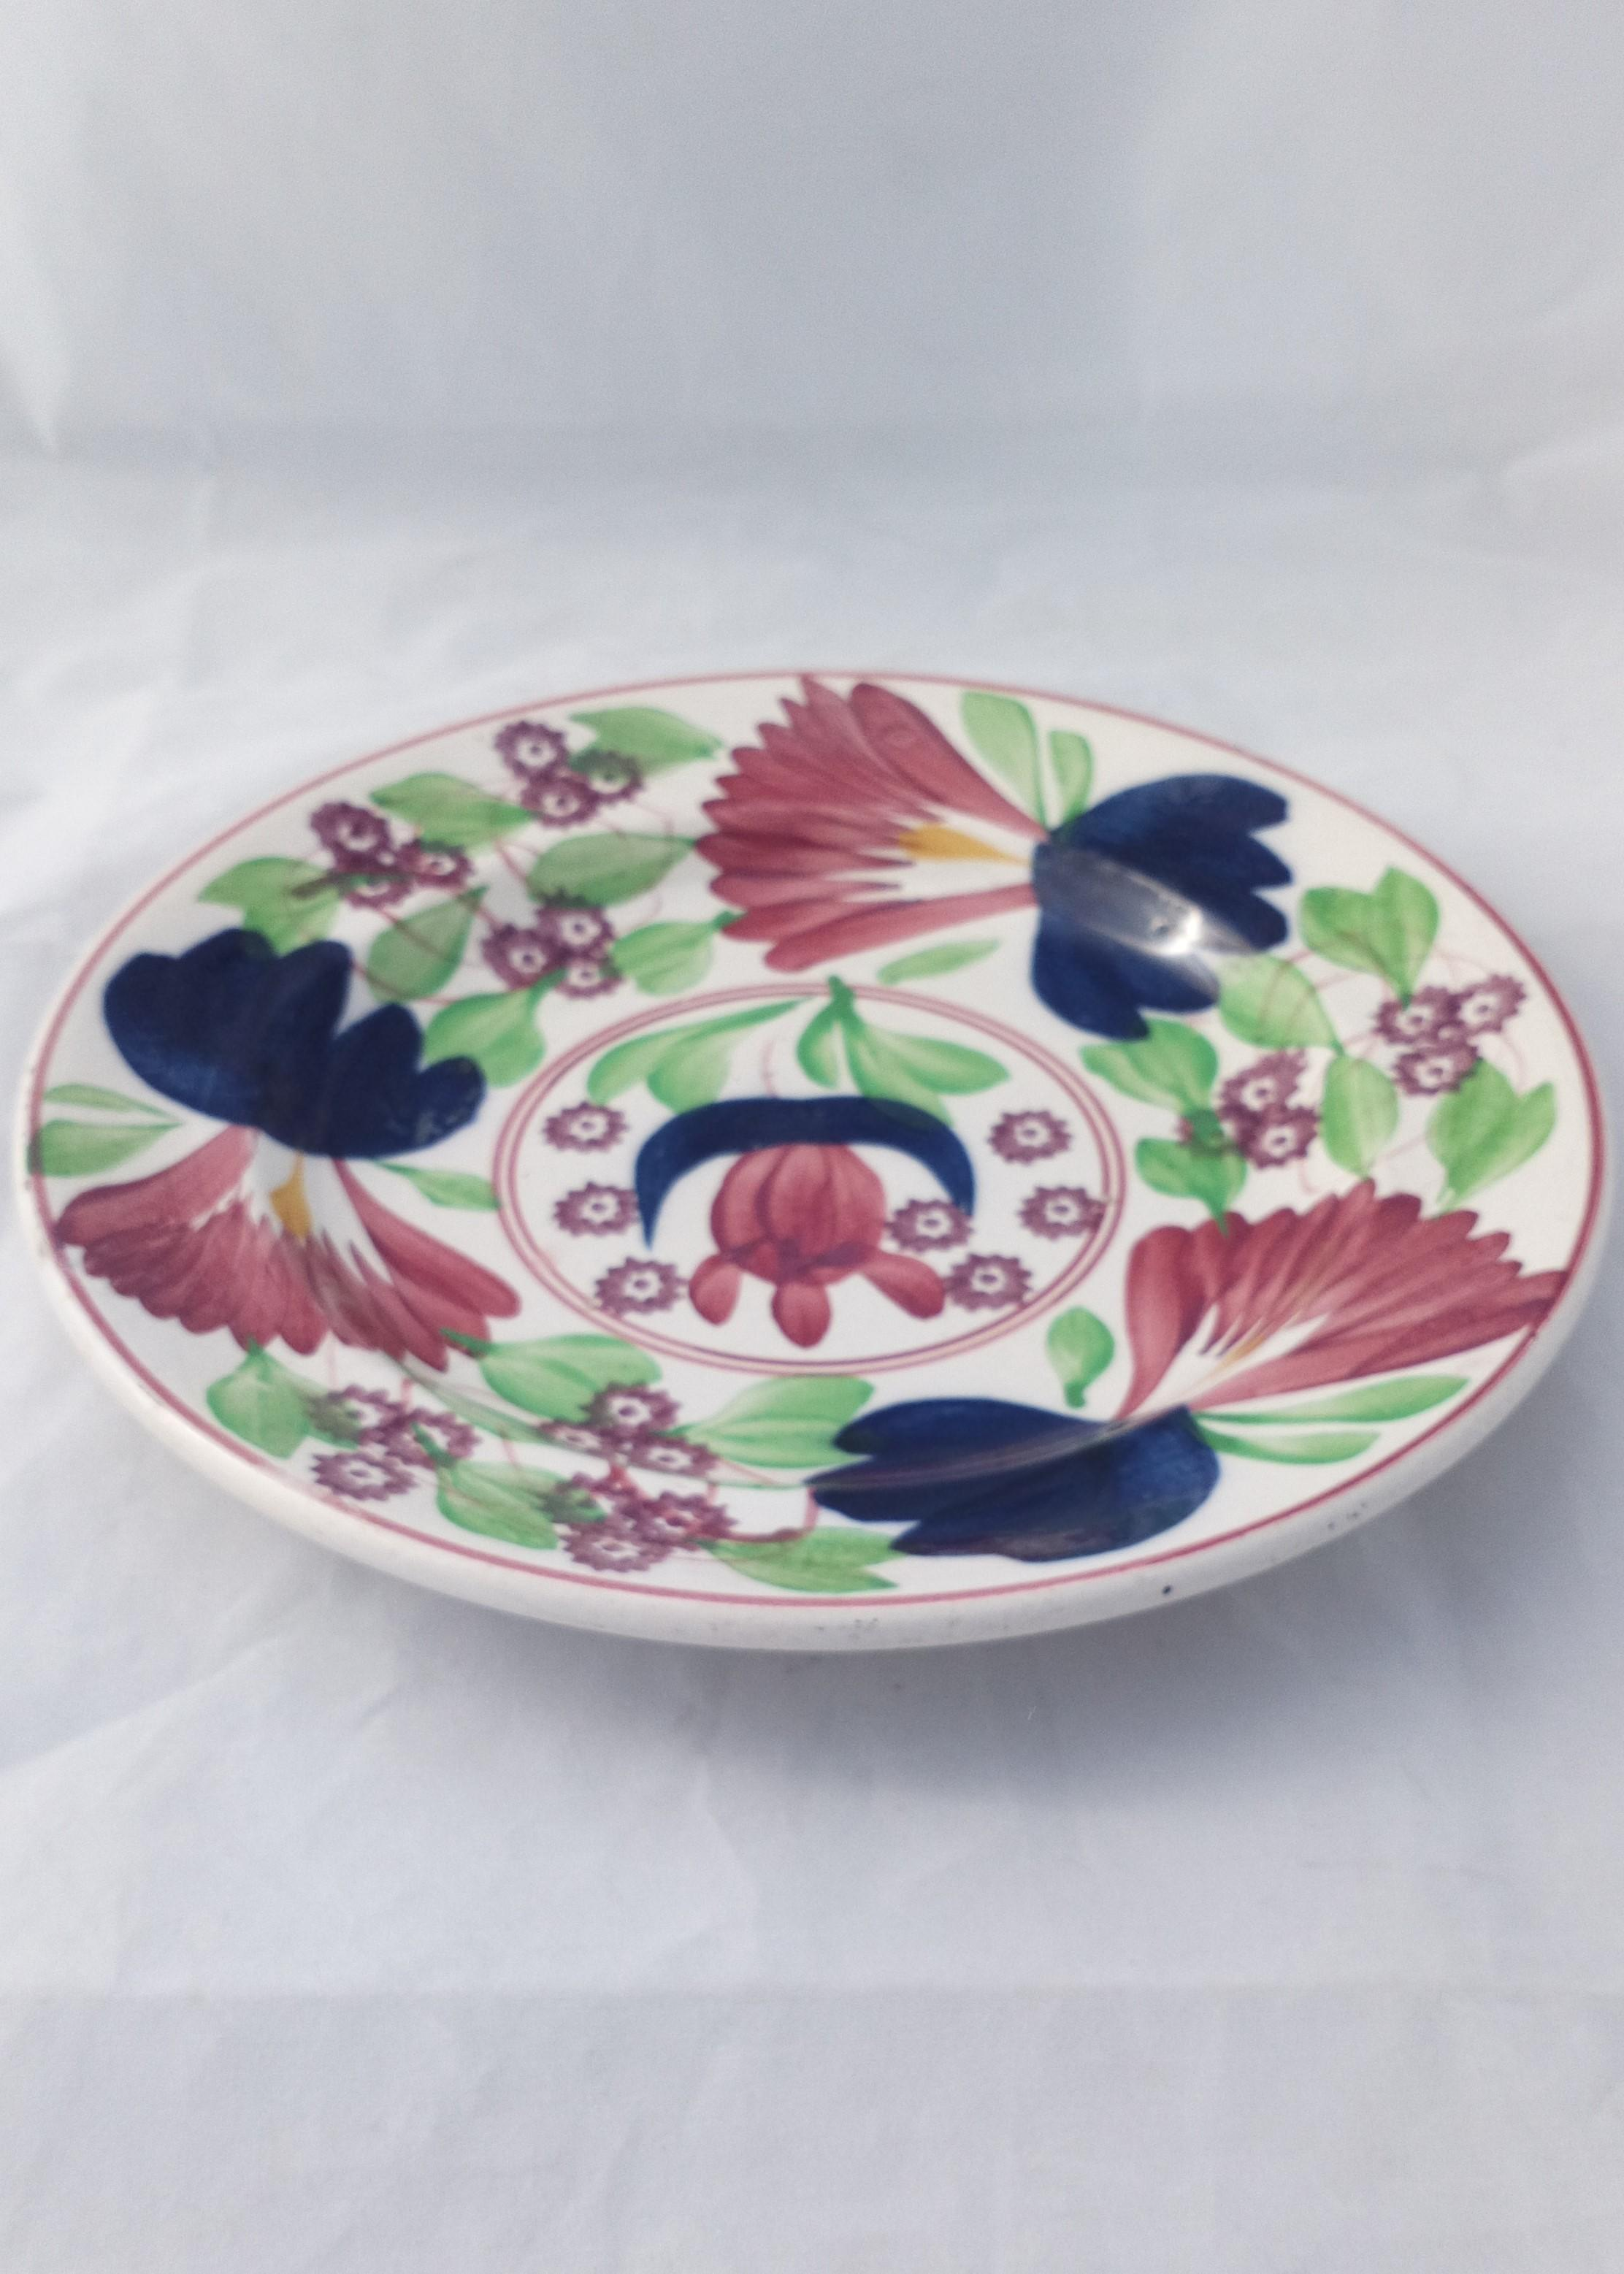 Antique Spongeware Plate Hand Painted Tulip Pattern Norman W Franks, London 1910